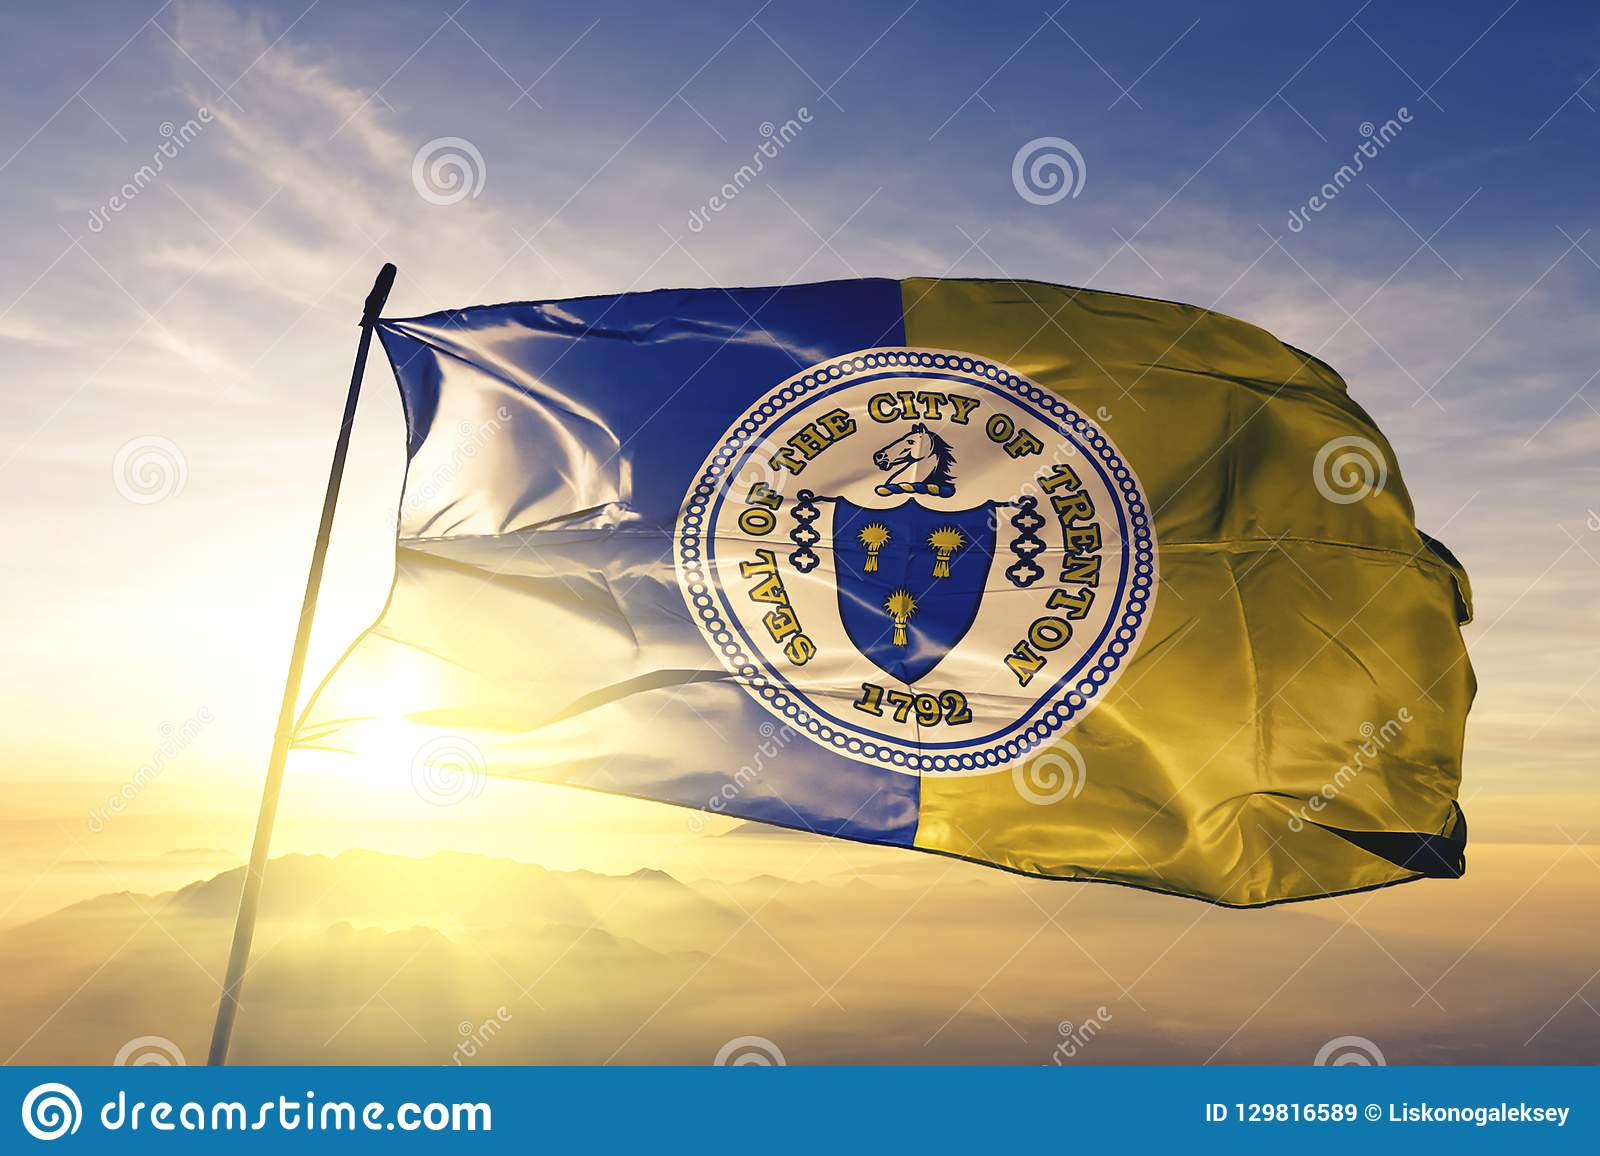 Trenton city capital of New Jersey of United States flag textile cloth fabric waving on the top sunrise mist fog